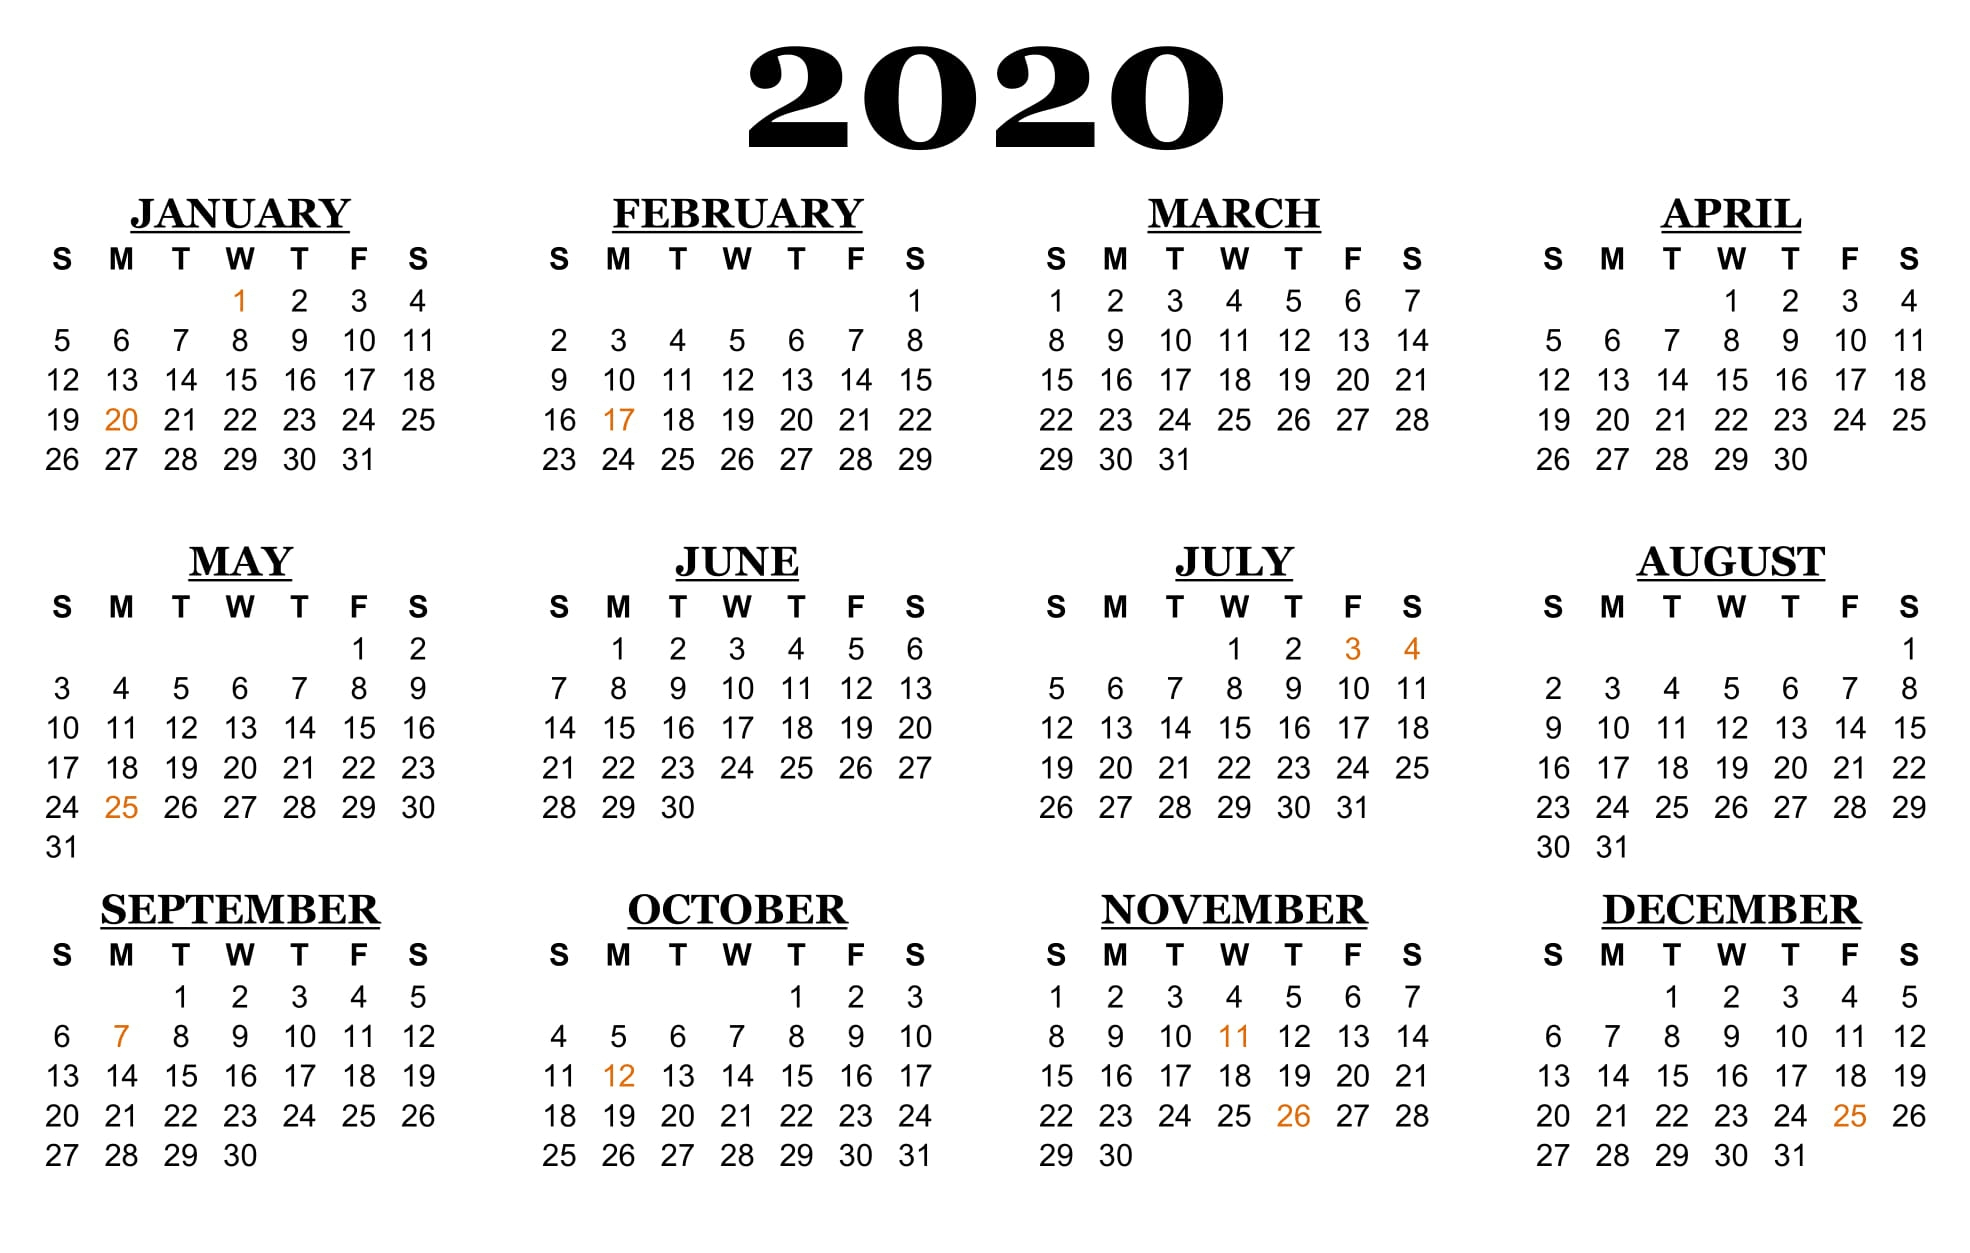 2020 Calendar With Nsw School Holidays | Free Calendar Printable Calenders With Date And Time On 8 1/2 X 11 Paper